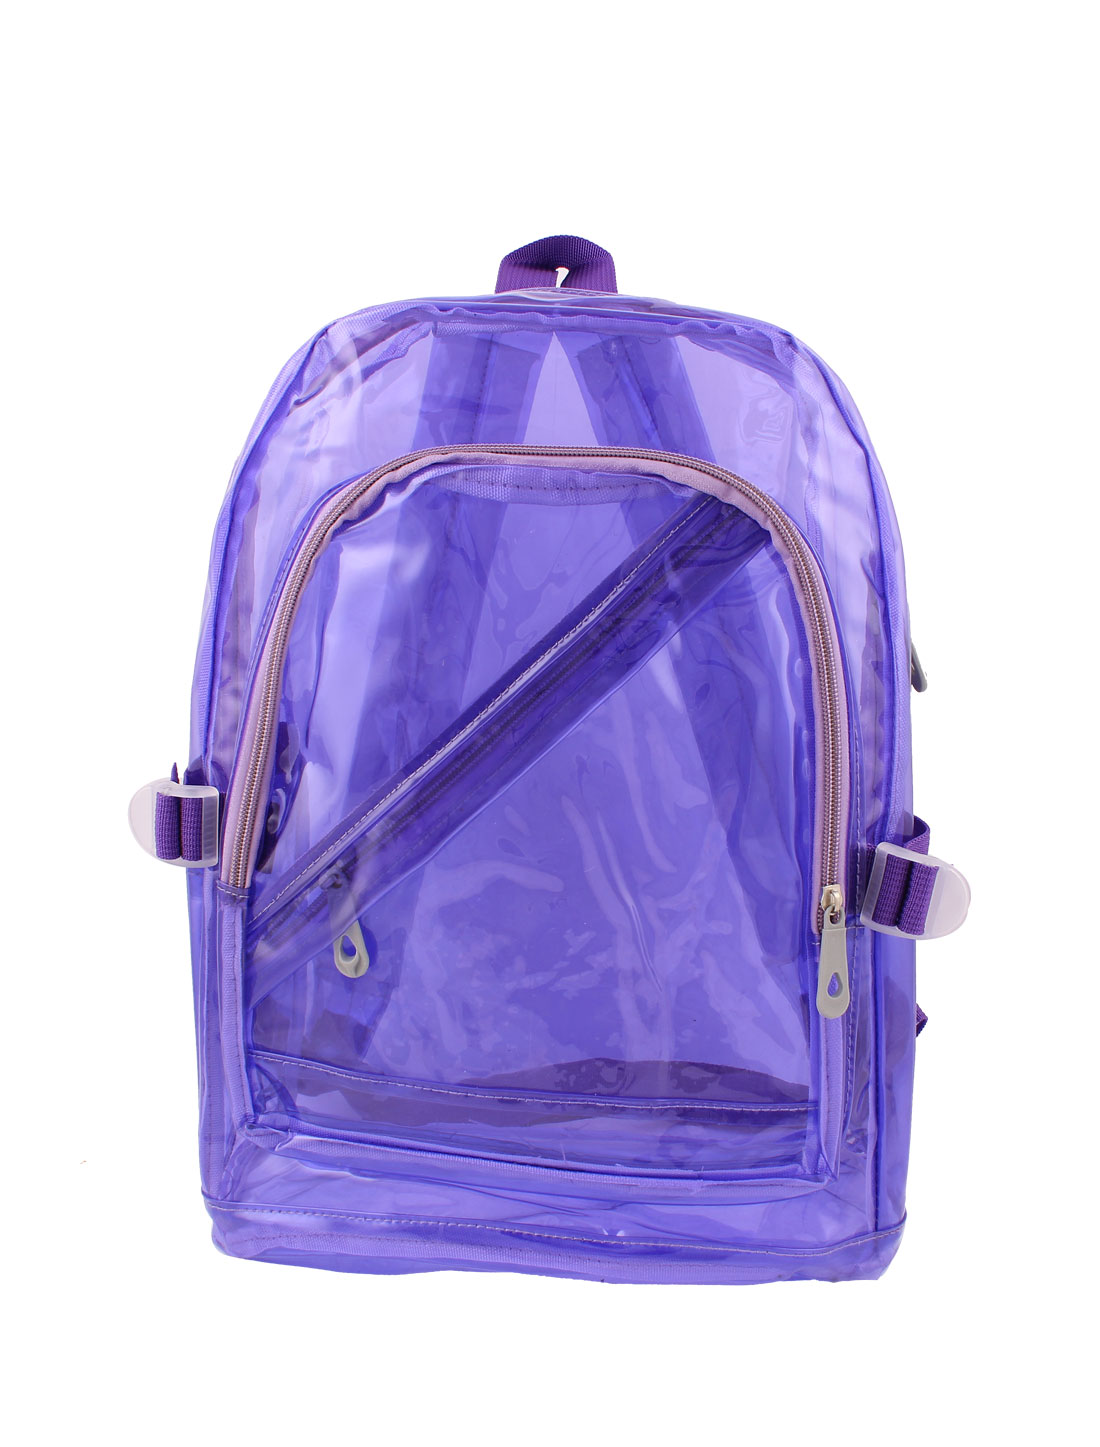 2015 New Outdoor Transparency Clear Zipper Backpack Satchel Knapsack Purple